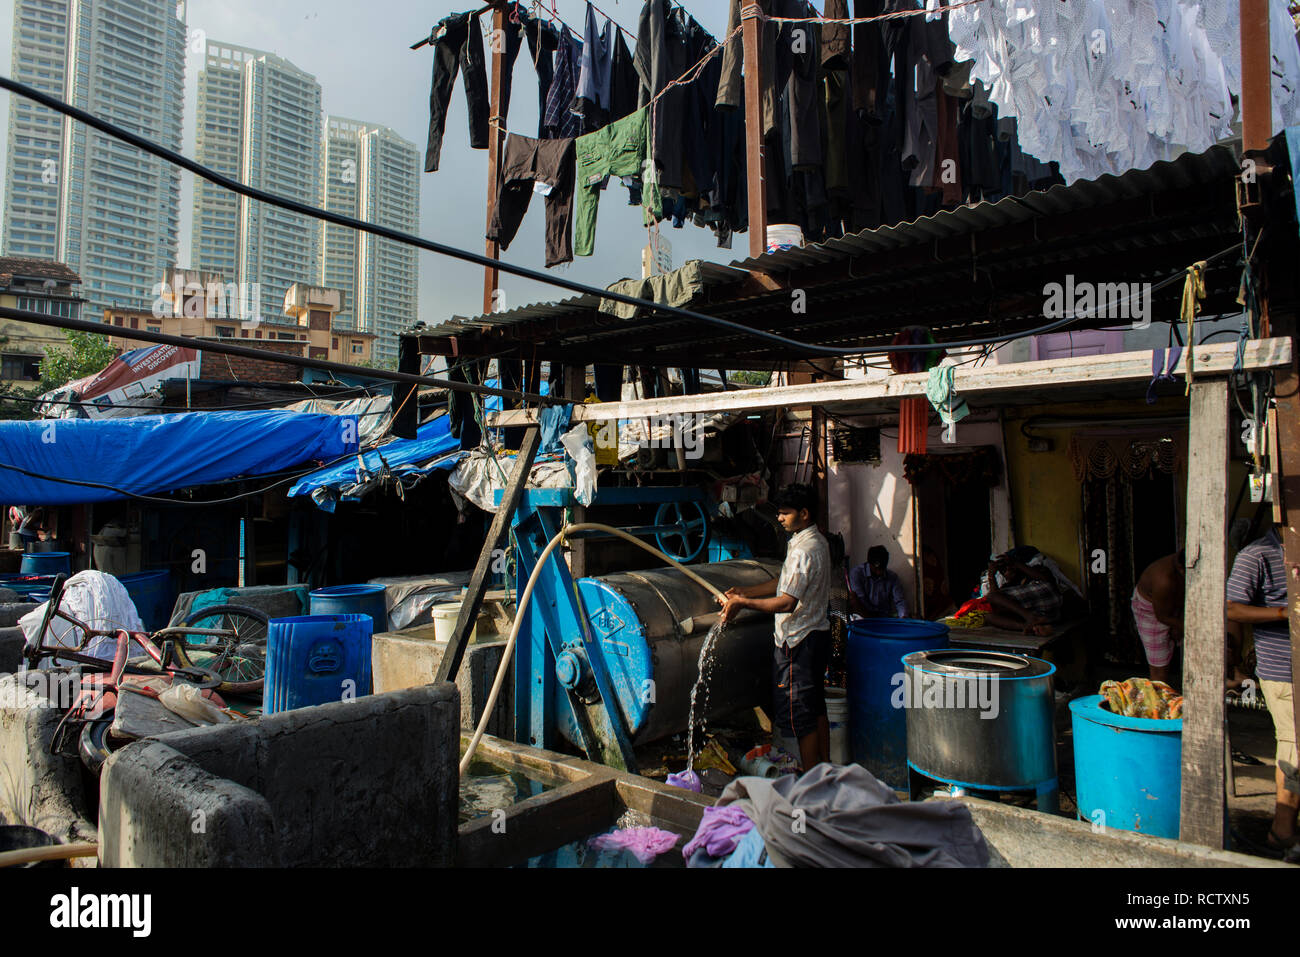 Washermen are at work in an open-air laundromat in Mumbai. - Stock Image